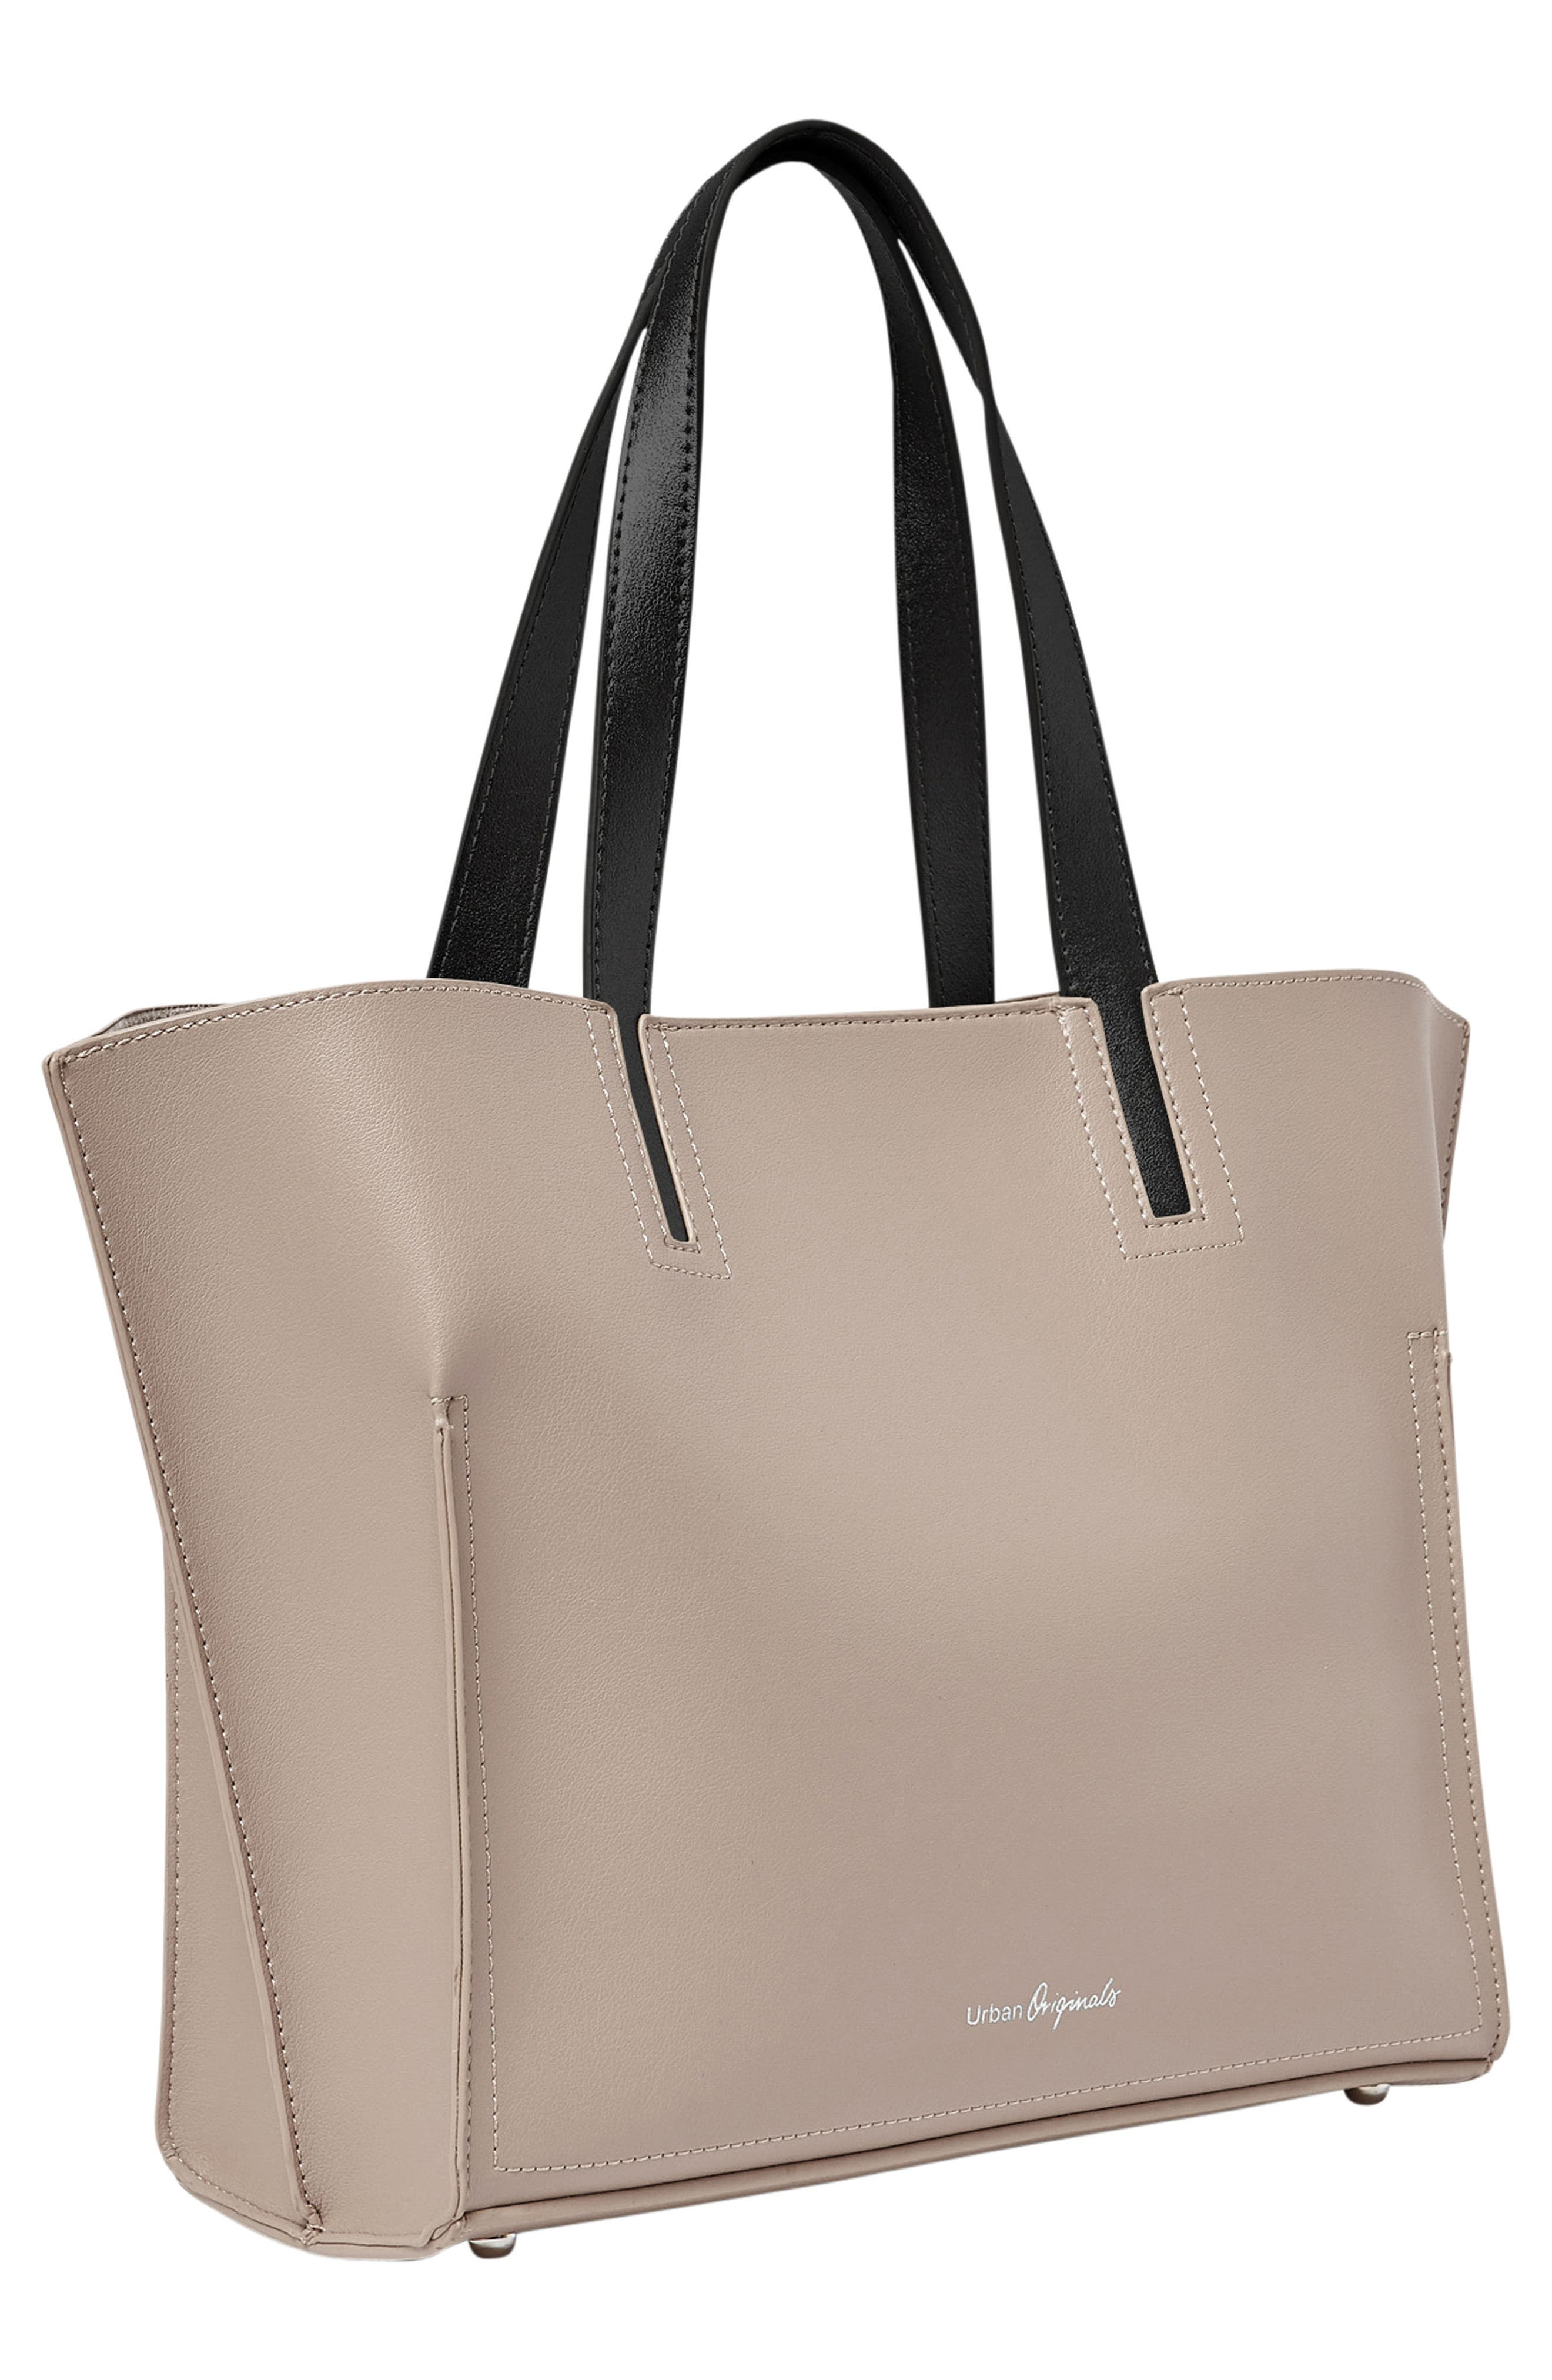 Obsession Vegan Leather Tote,                             Alternate thumbnail 8, color,